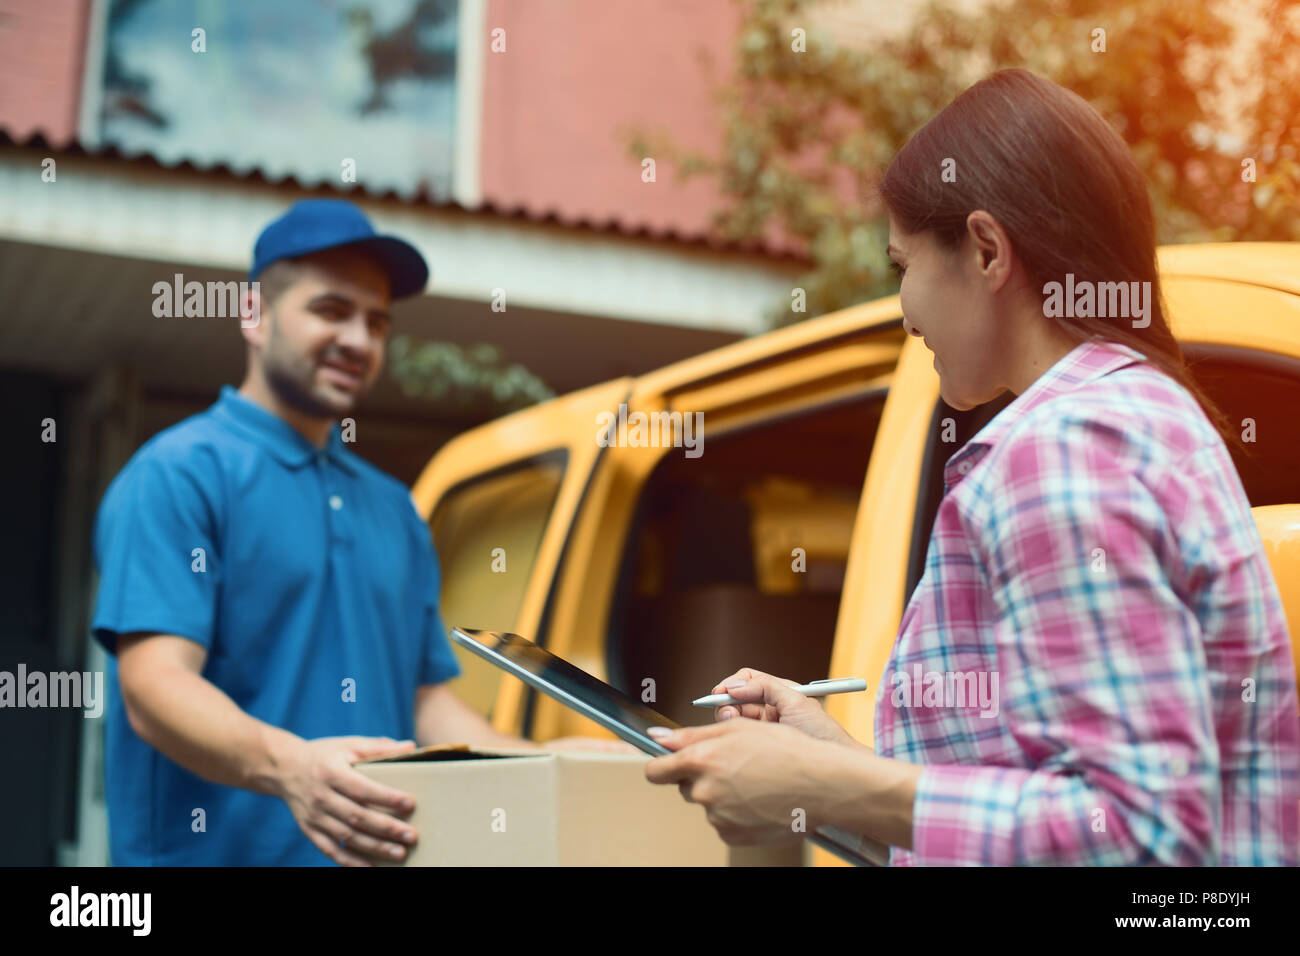 Delivery man handing package box. - Stock Image